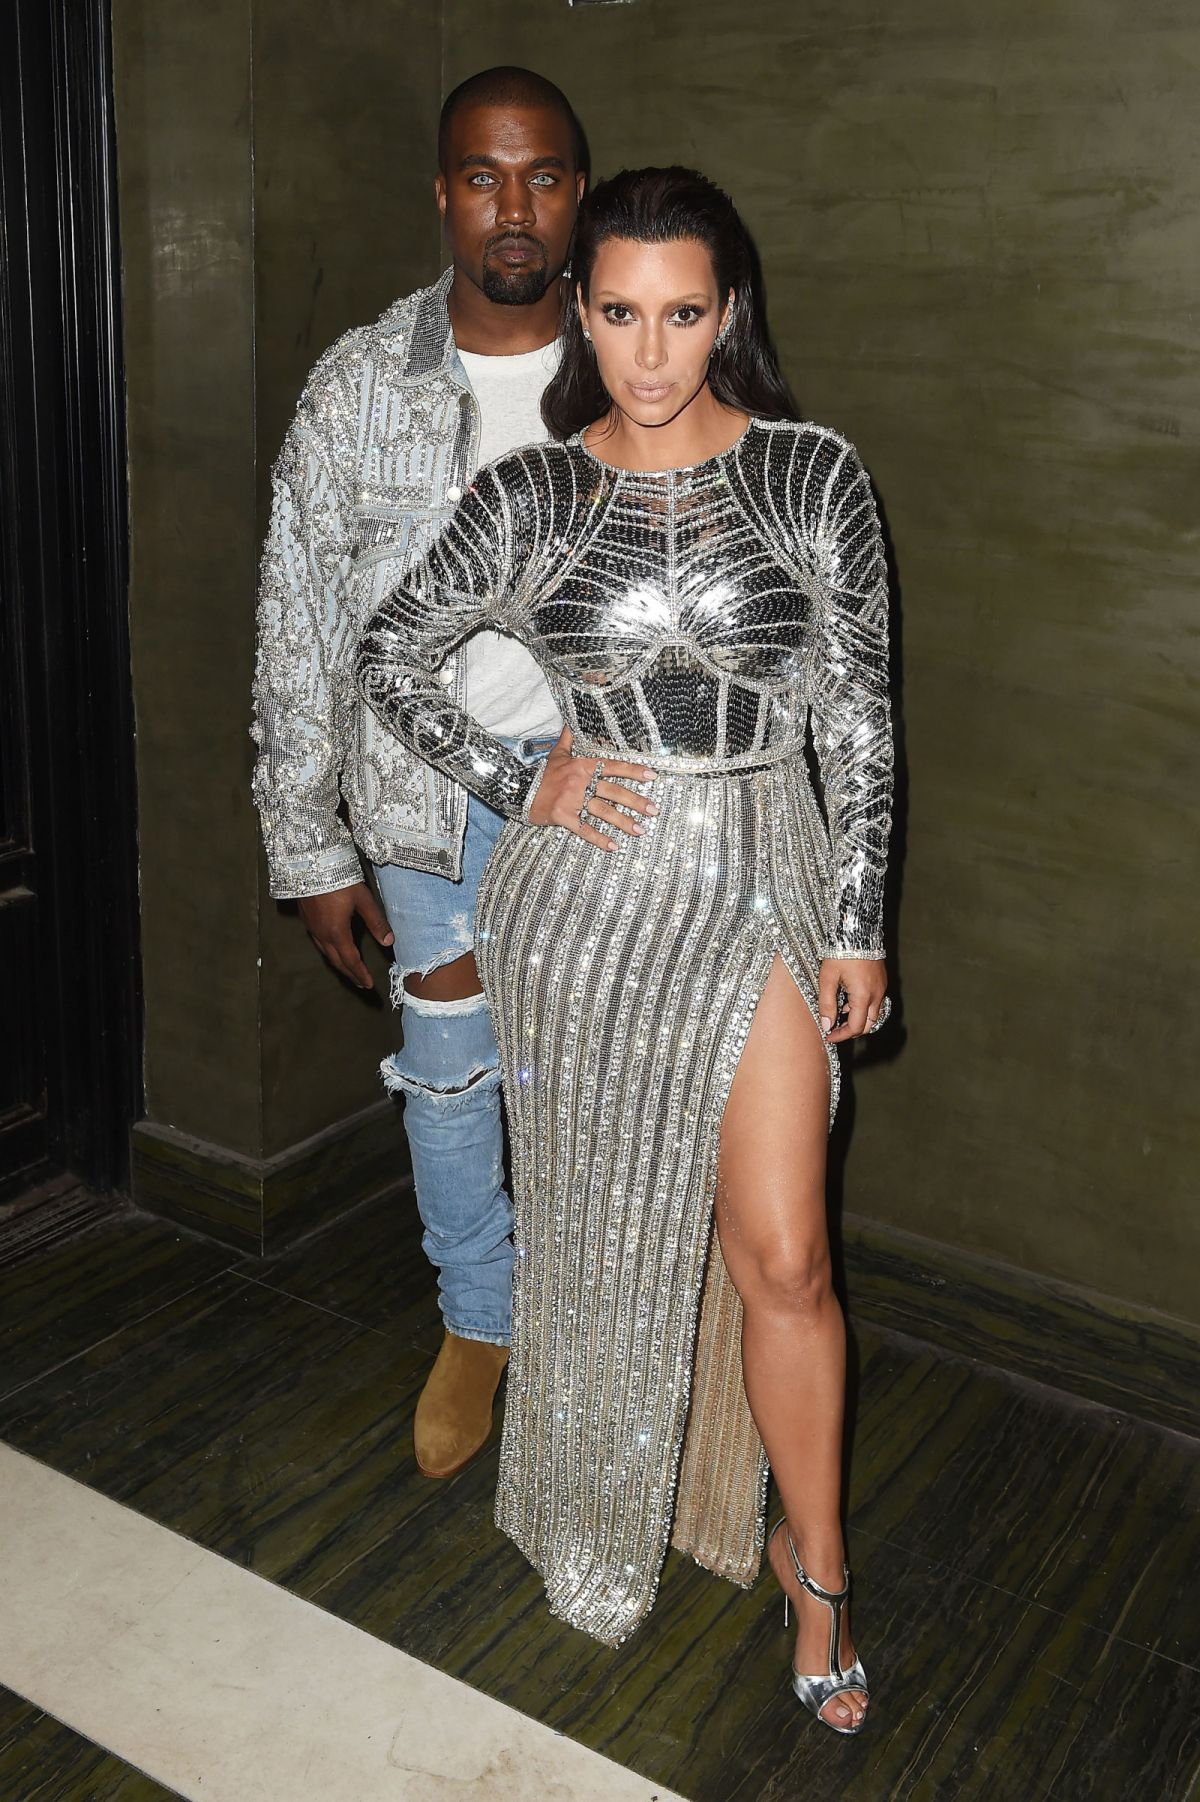 KIM KARDASHIAN and Kanye West at Met Gala After-party in New York 05/02/2016